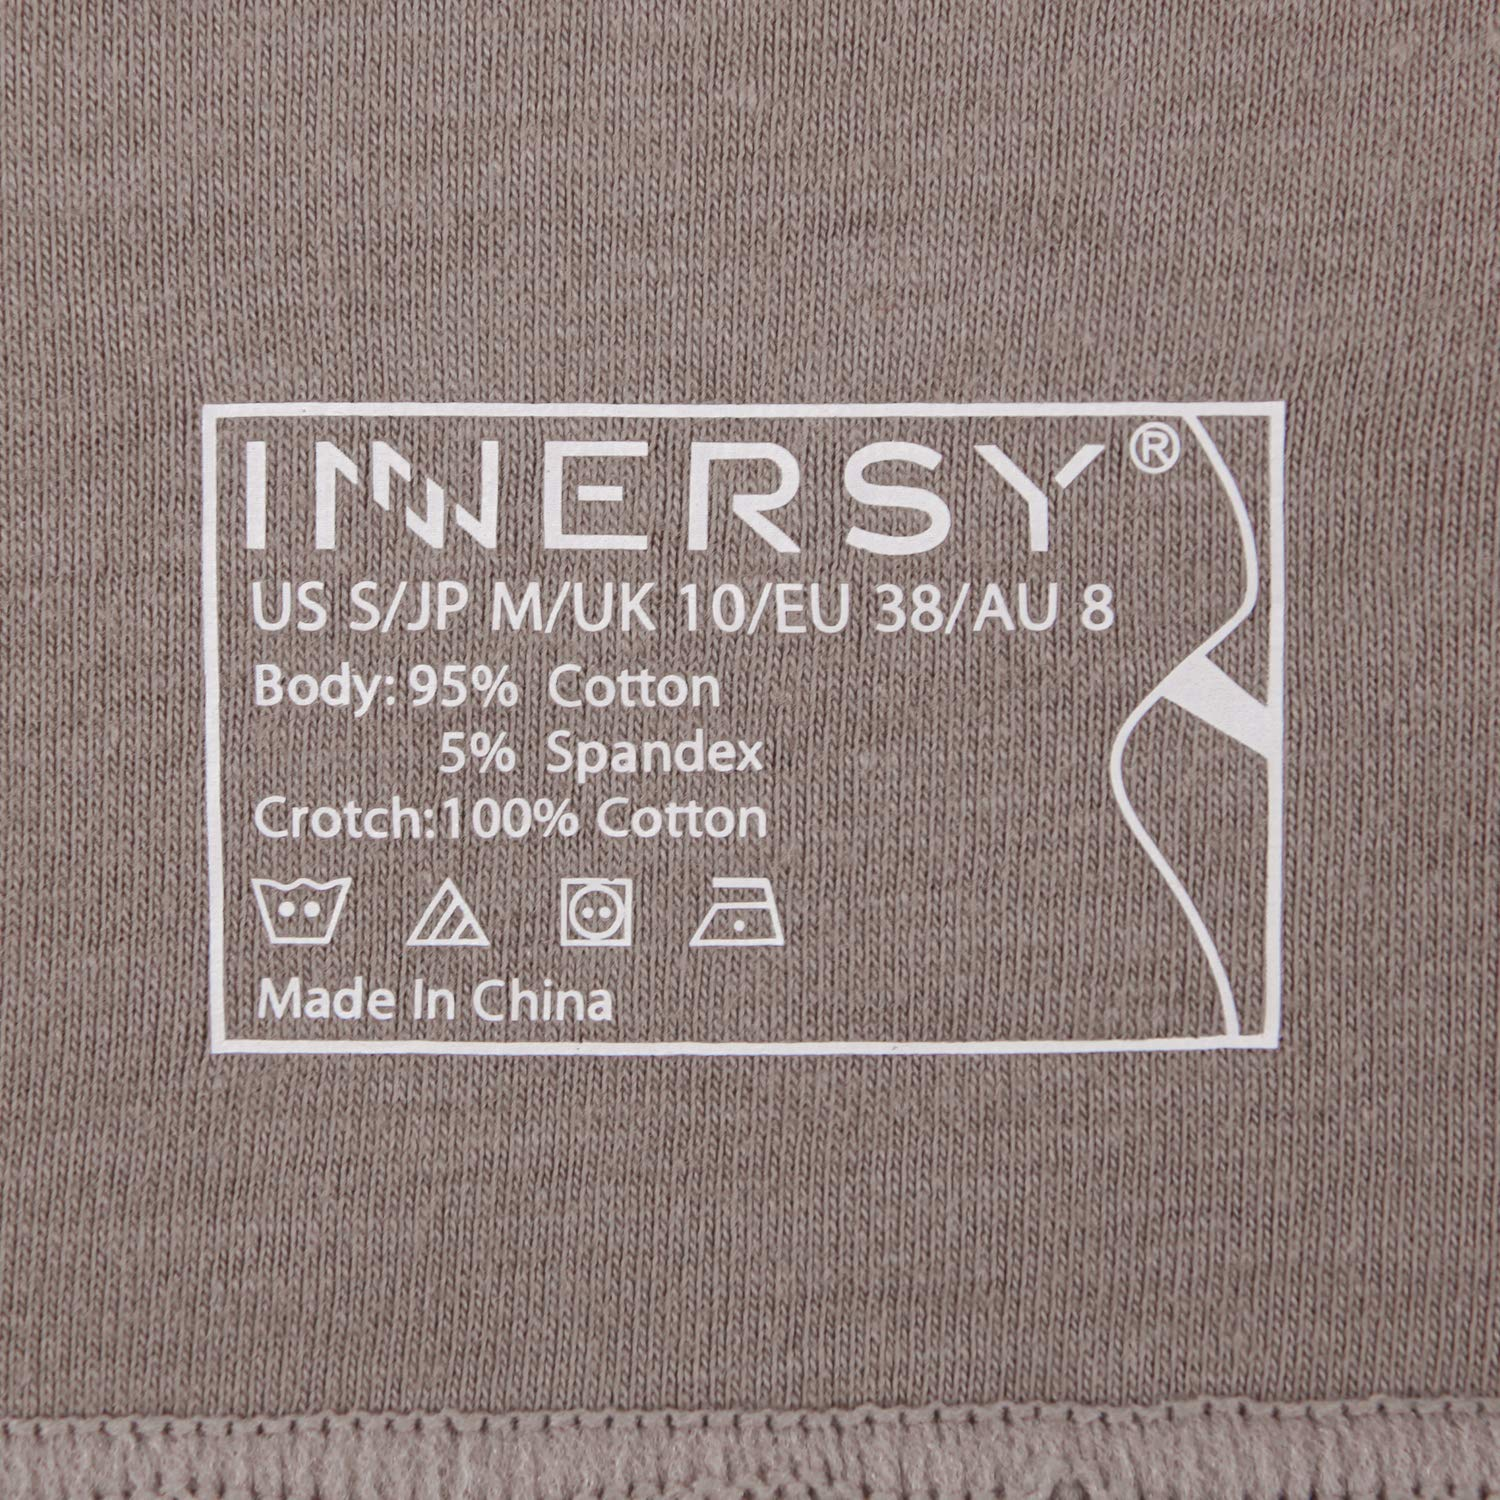 INNERSY Ladies Underwear High Waist Tummy Control Cotton Pants Slimming Shaping Briefs Multipack